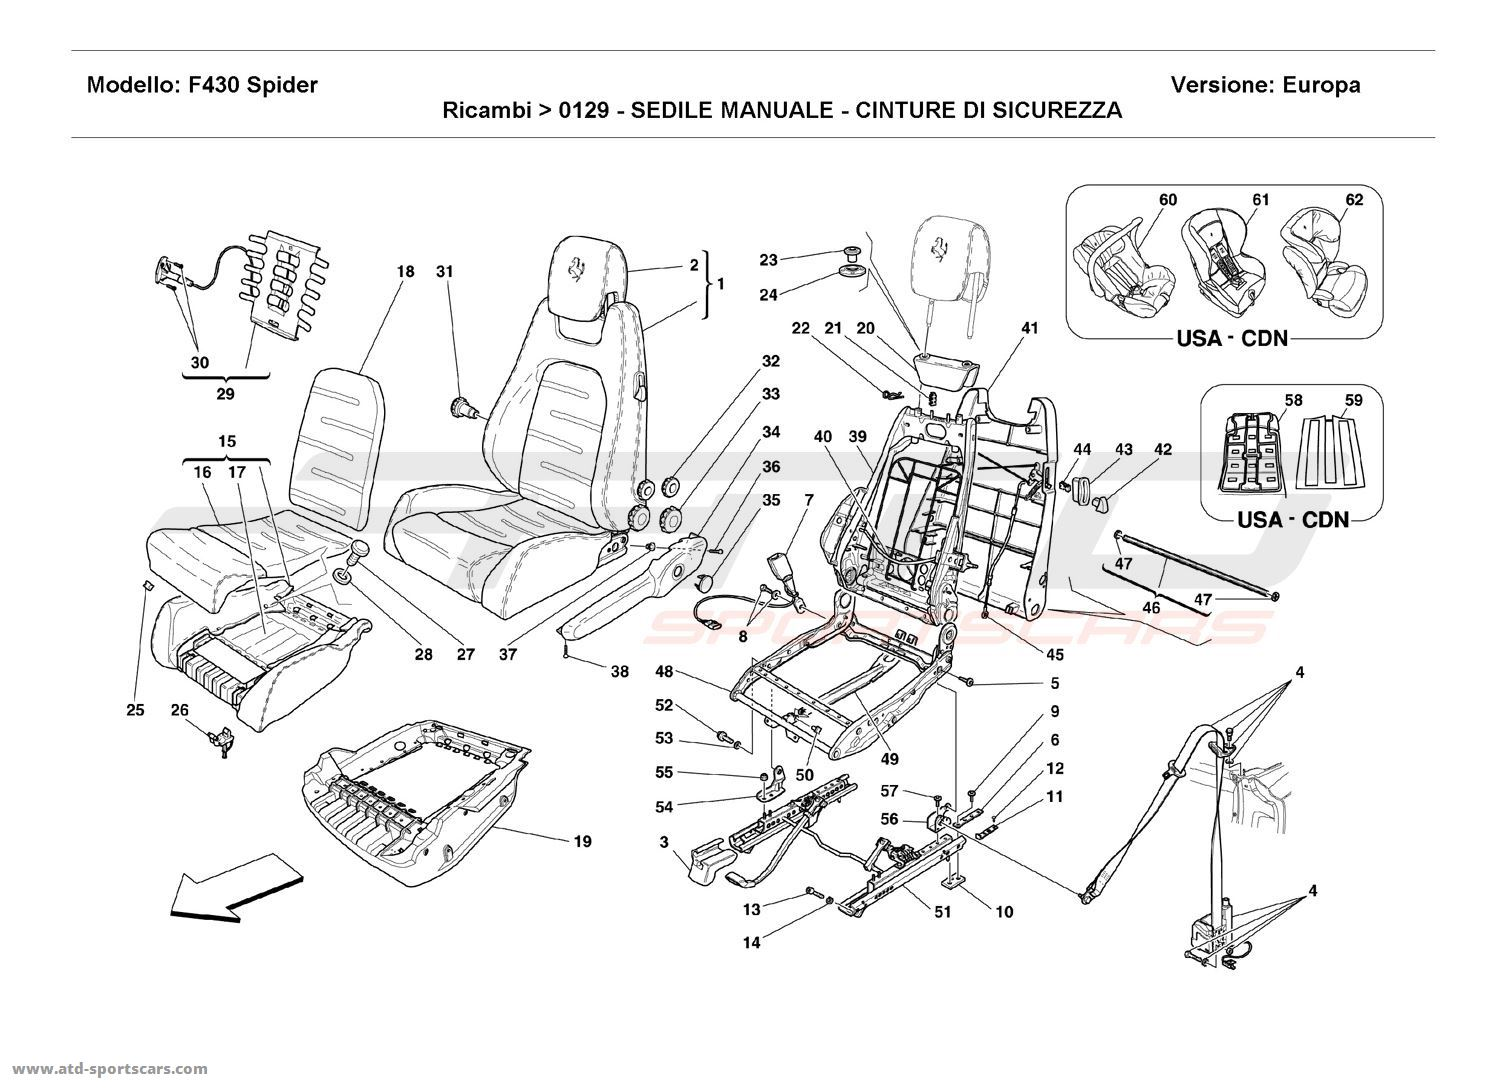 Ferrari F430 Spider Interior Parts At Atd Sportscars Wiring Diagram 8 Manual Seat Safety Belts